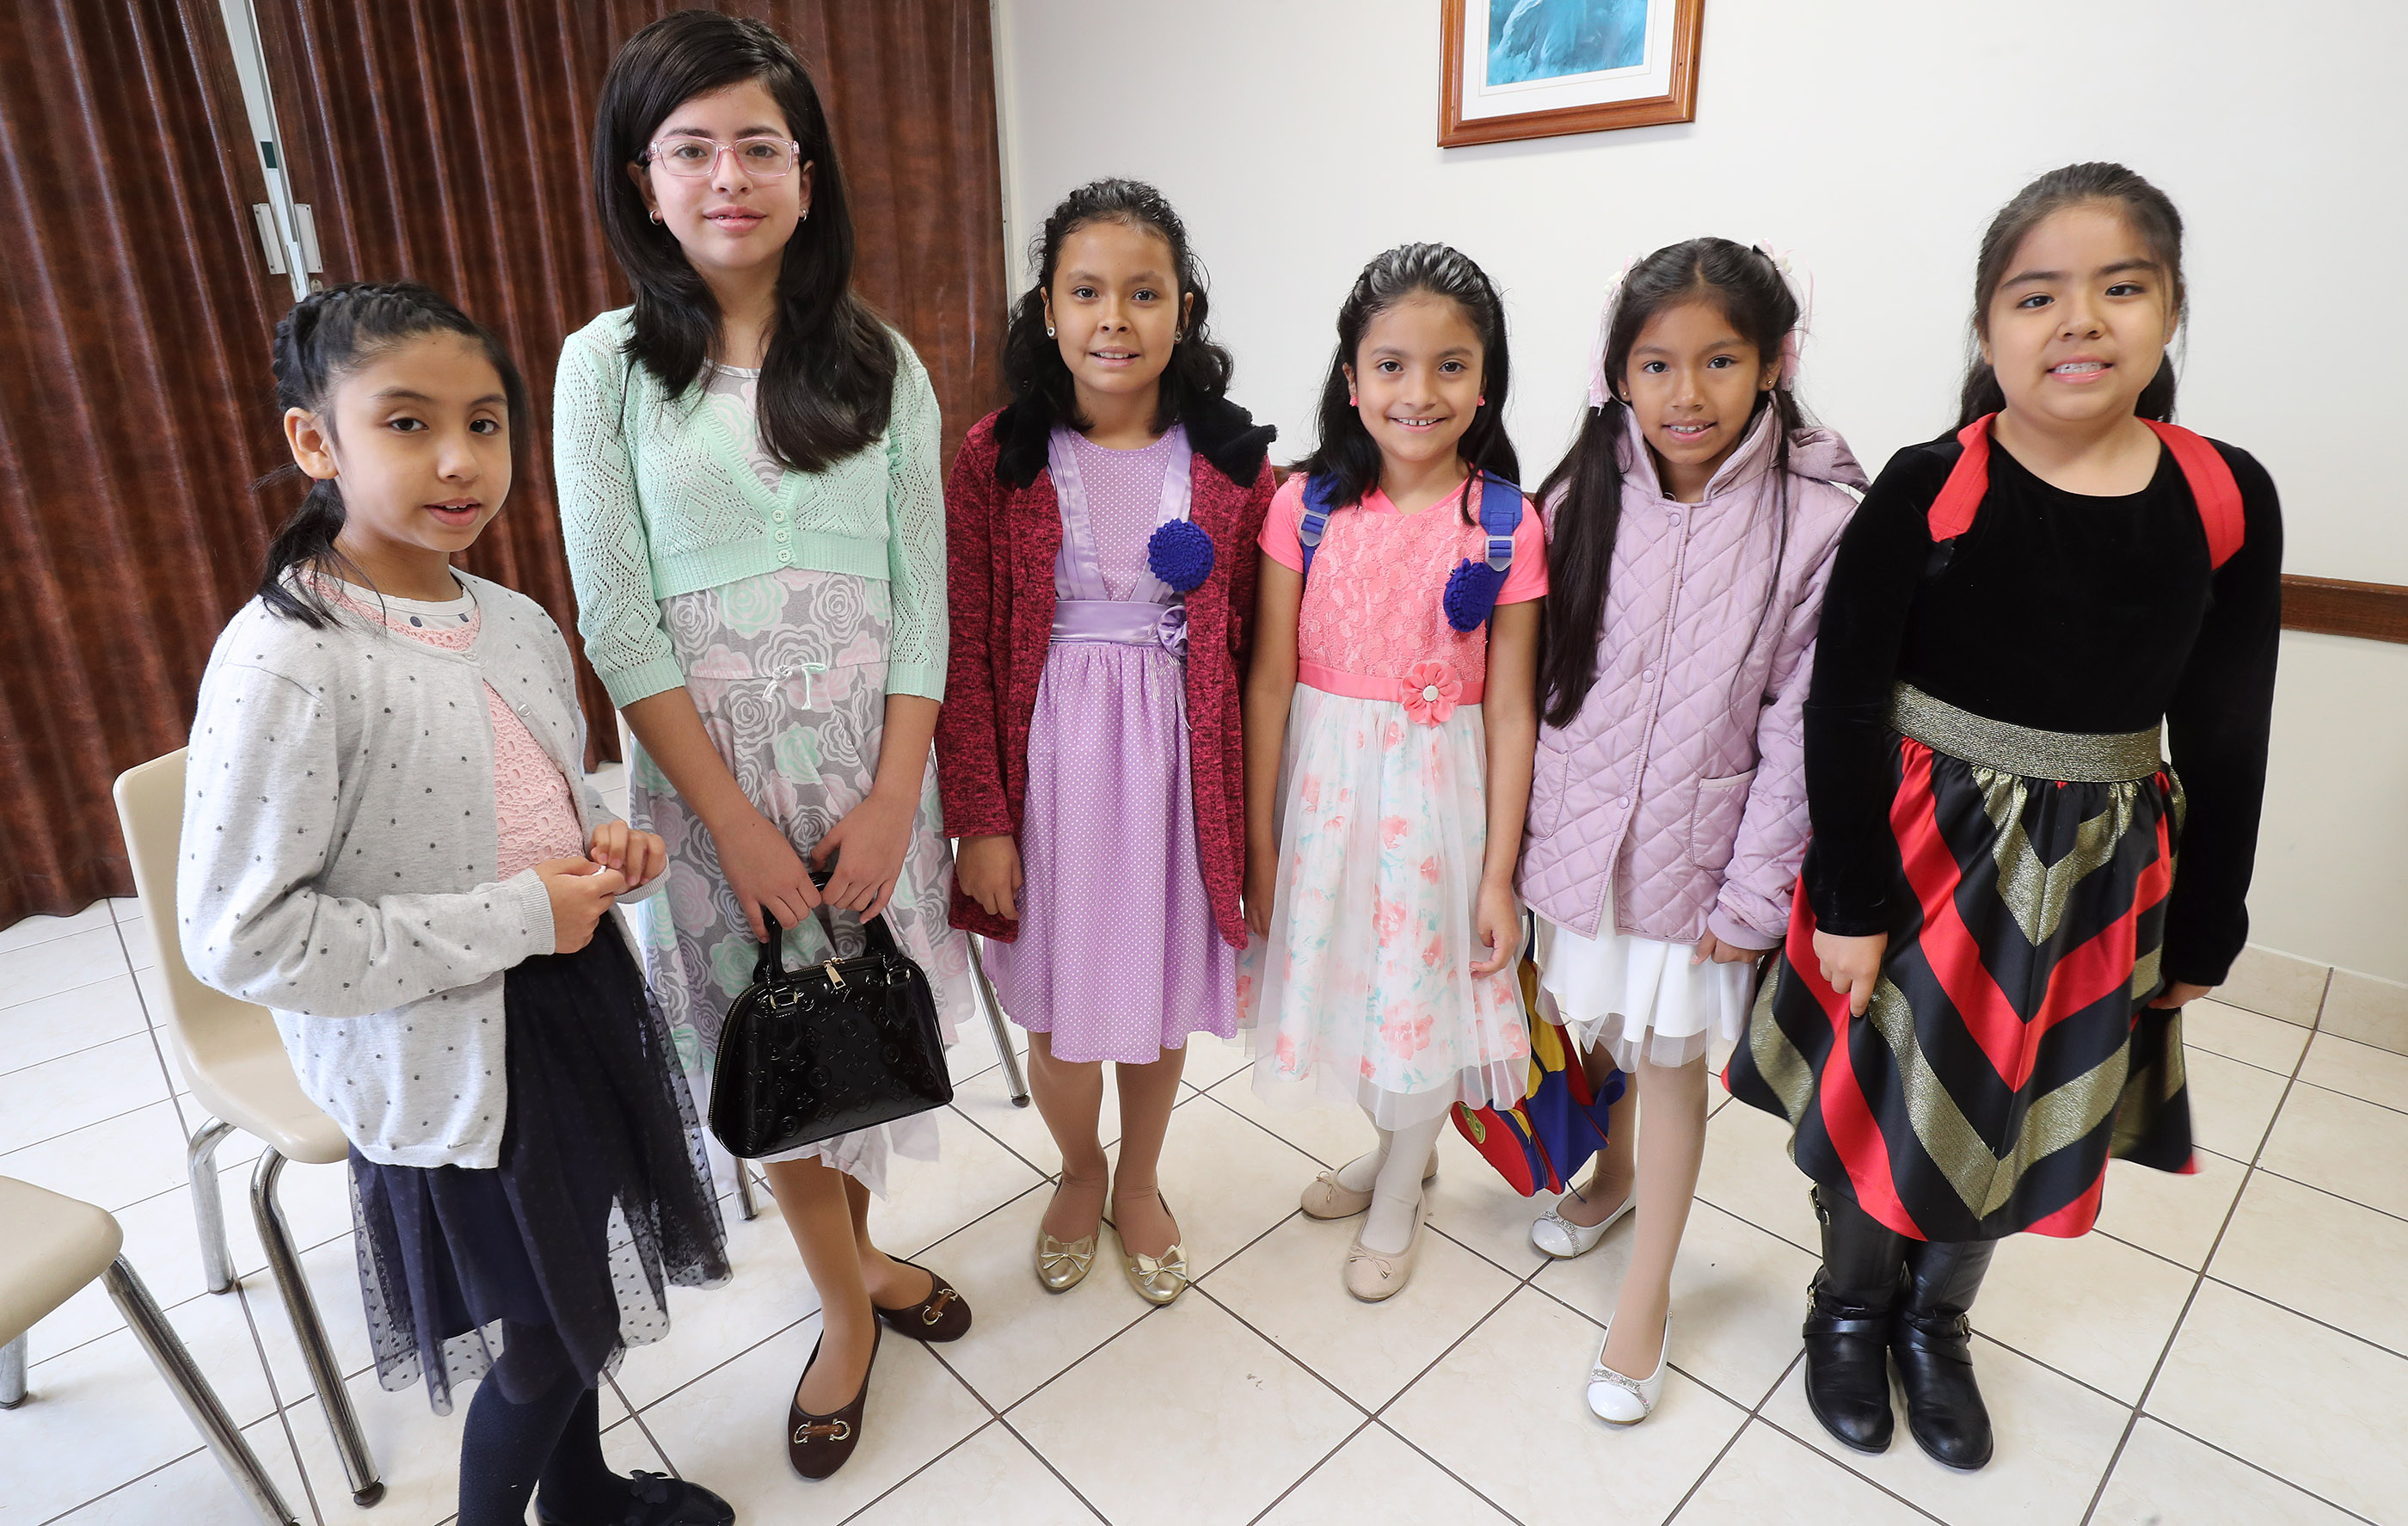 Church of Jesus Christ of Latter-day Saints primary children pose for a photo prior to class in Lima, Peru on Oct. 21, 2018. The First Presidency announced changes Dec. 14 to the timeline children and youth in The Church of Jesus Christ of Latter-day Saints will complete Primary, move from one class or quorum to the next and attend the temple for the first time. The changes, effective January 2019, also impact when young men may be ordained to priesthood offices.